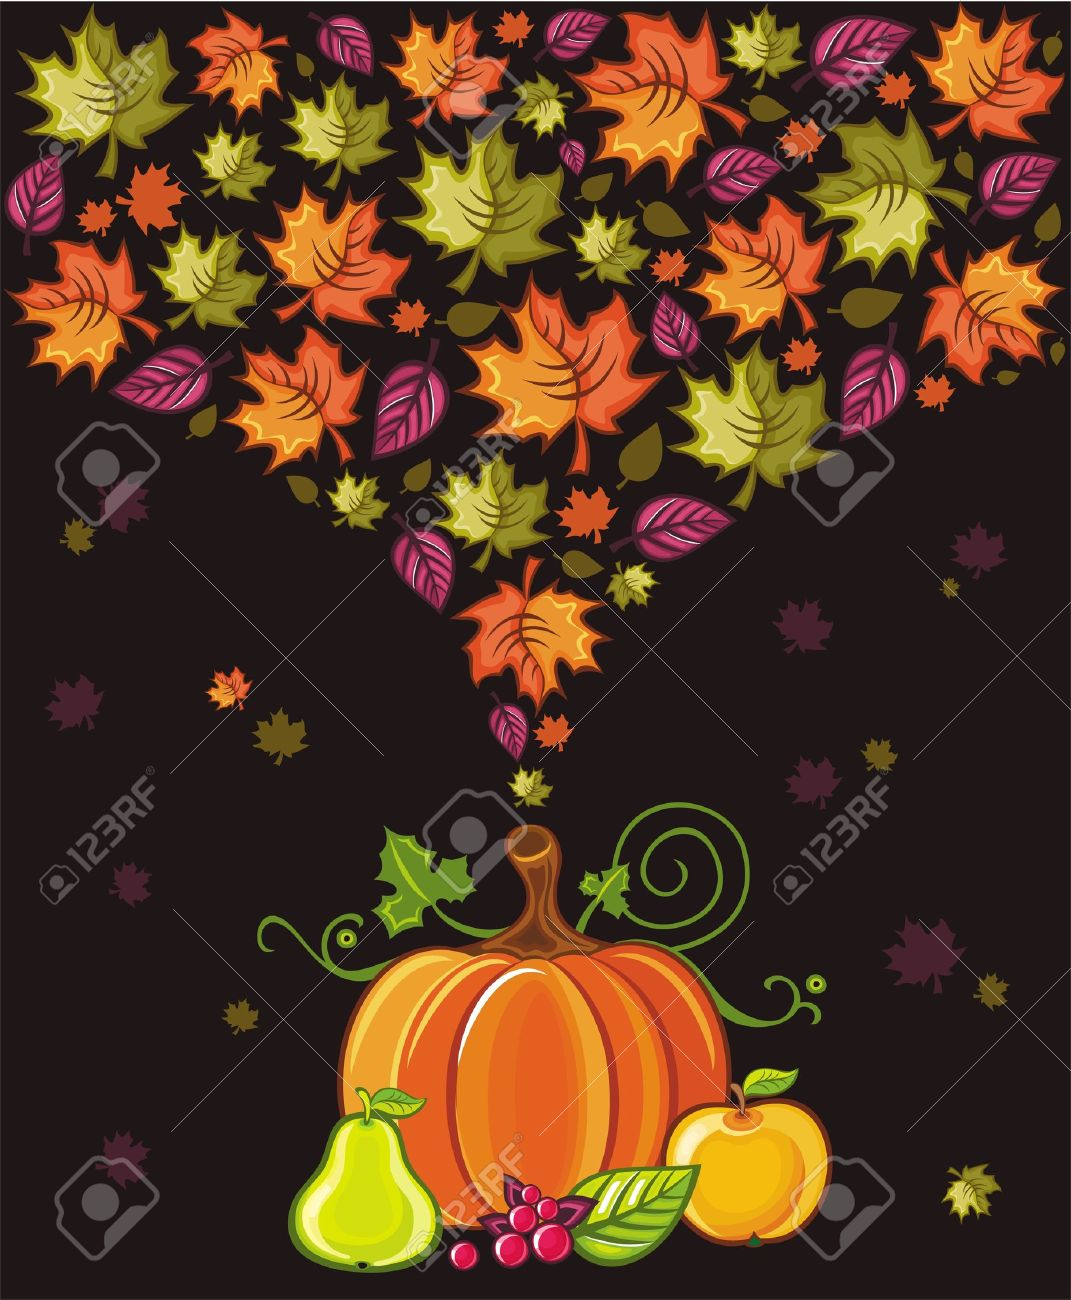 Thanksgiving Design: Colorful Leaves Flying Around Pumpkin,pear.